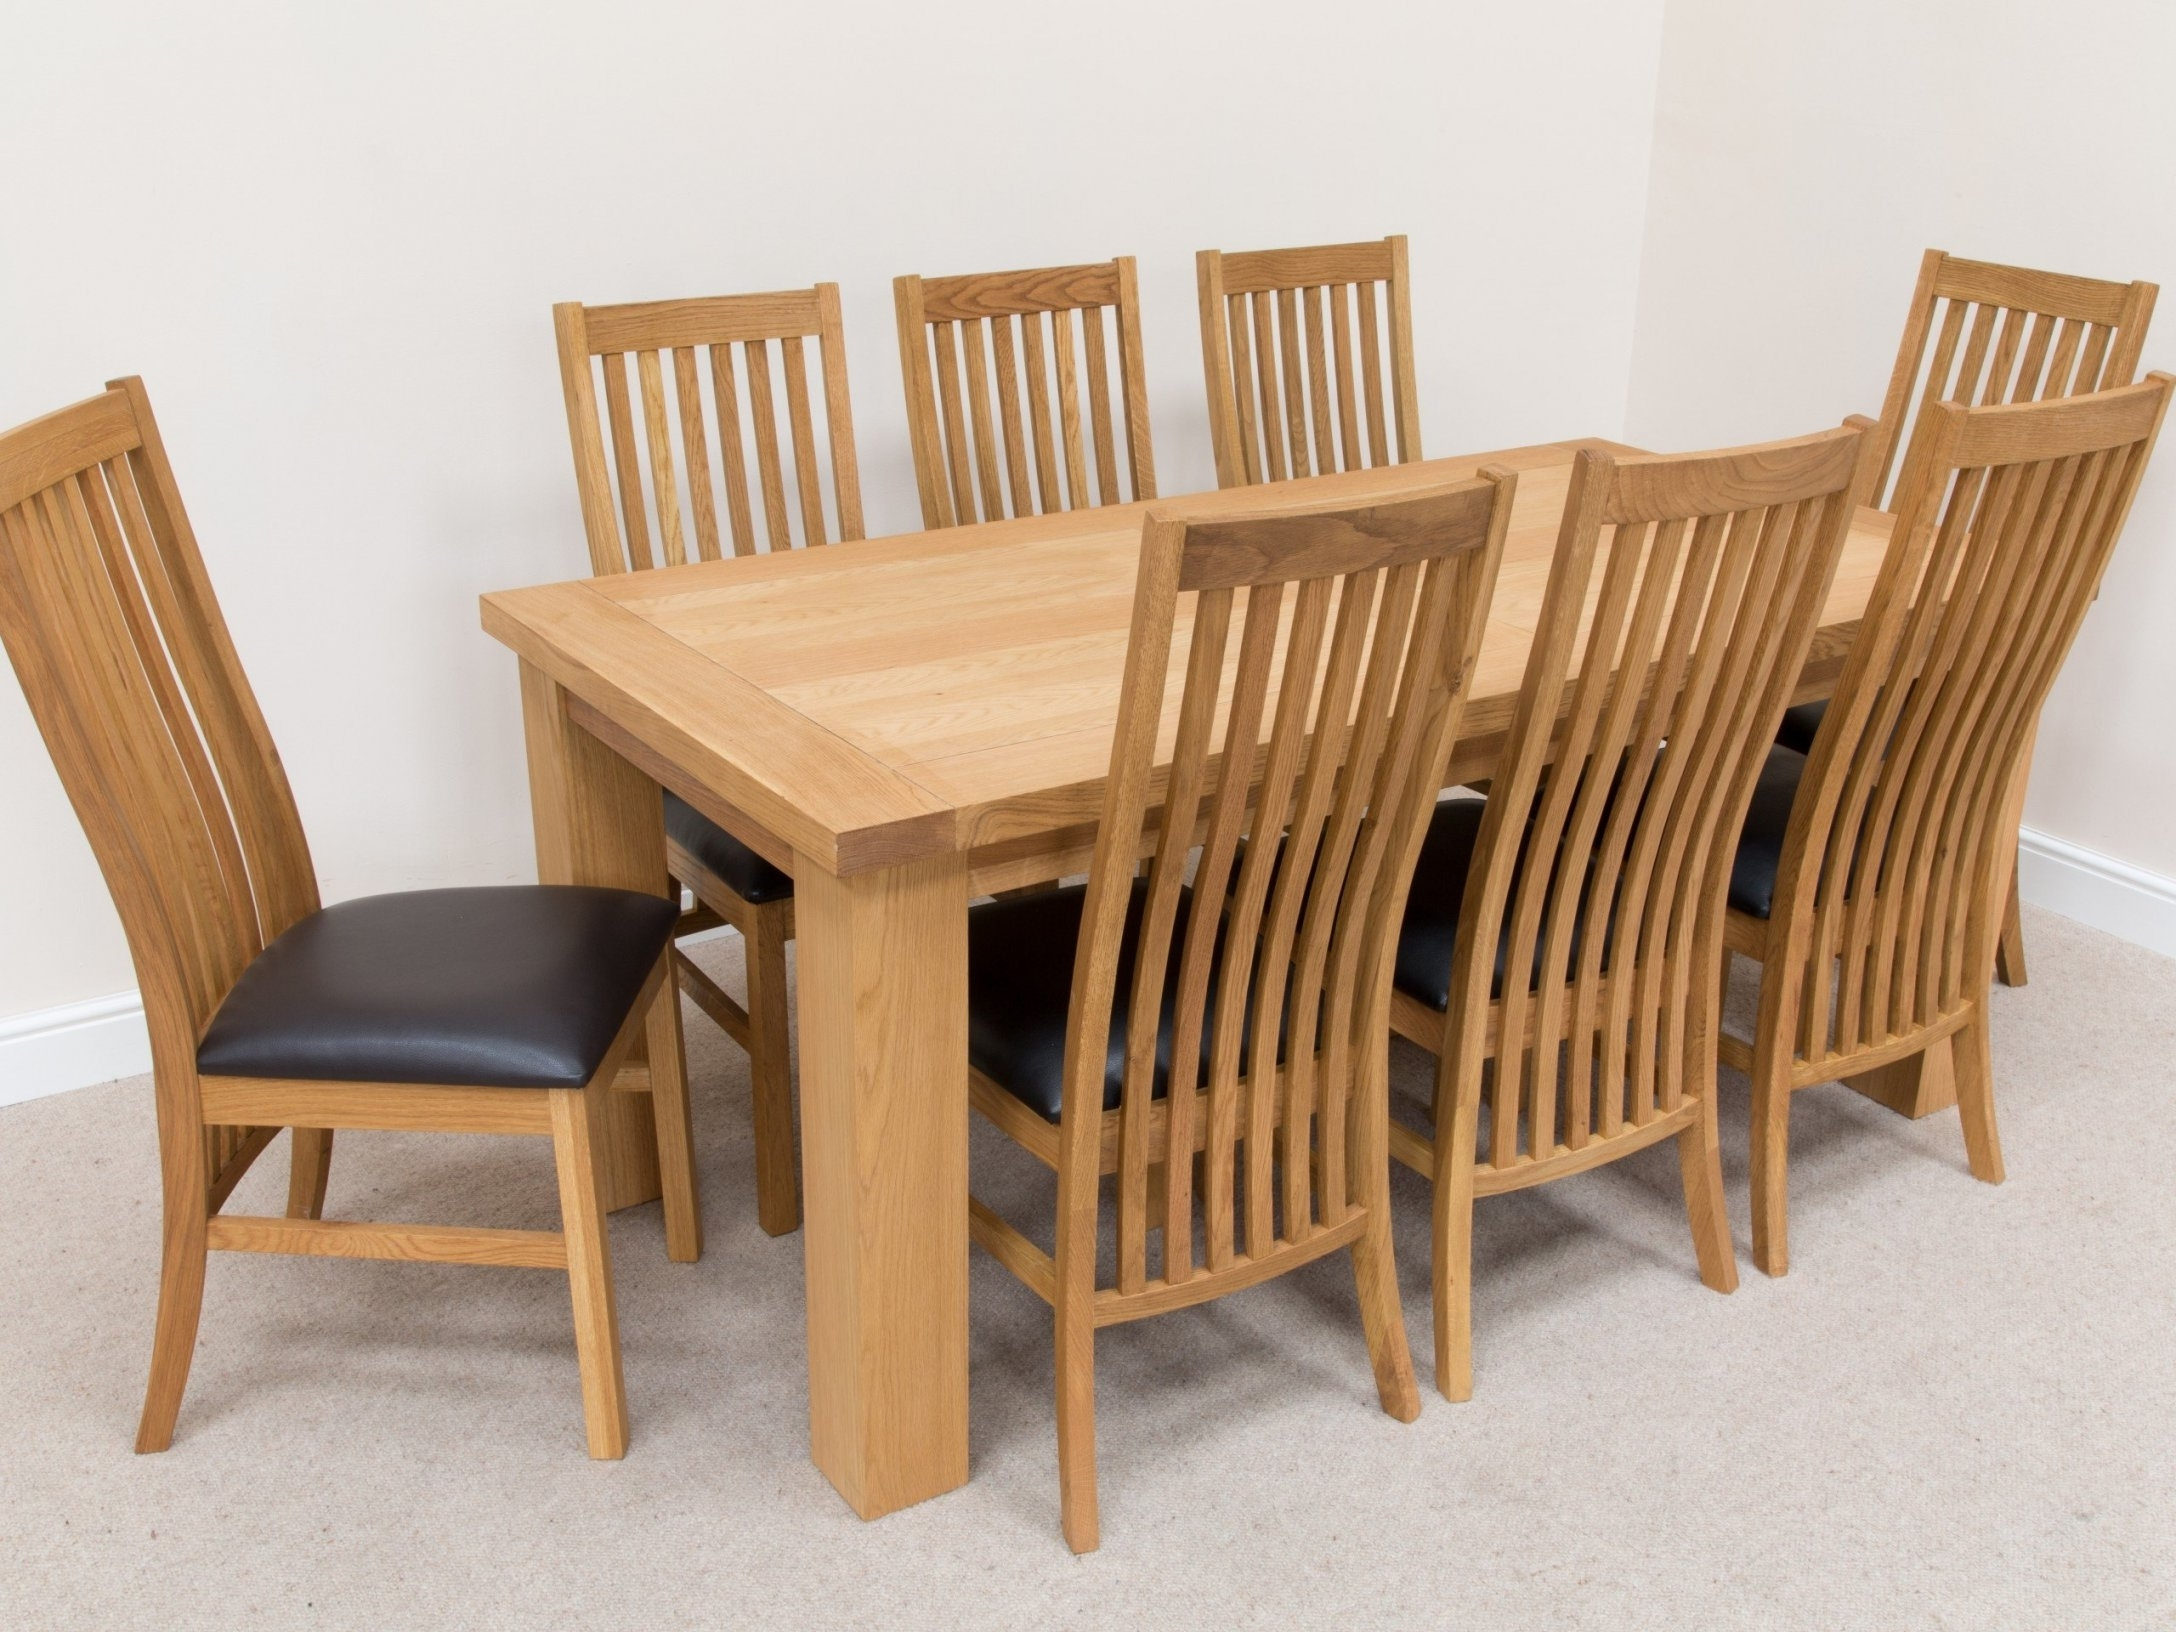 Oak 6 Seater Dining Tables With Regard To Popular Solid Wood Dining Table Set – Castrophotos (View 21 of 25)